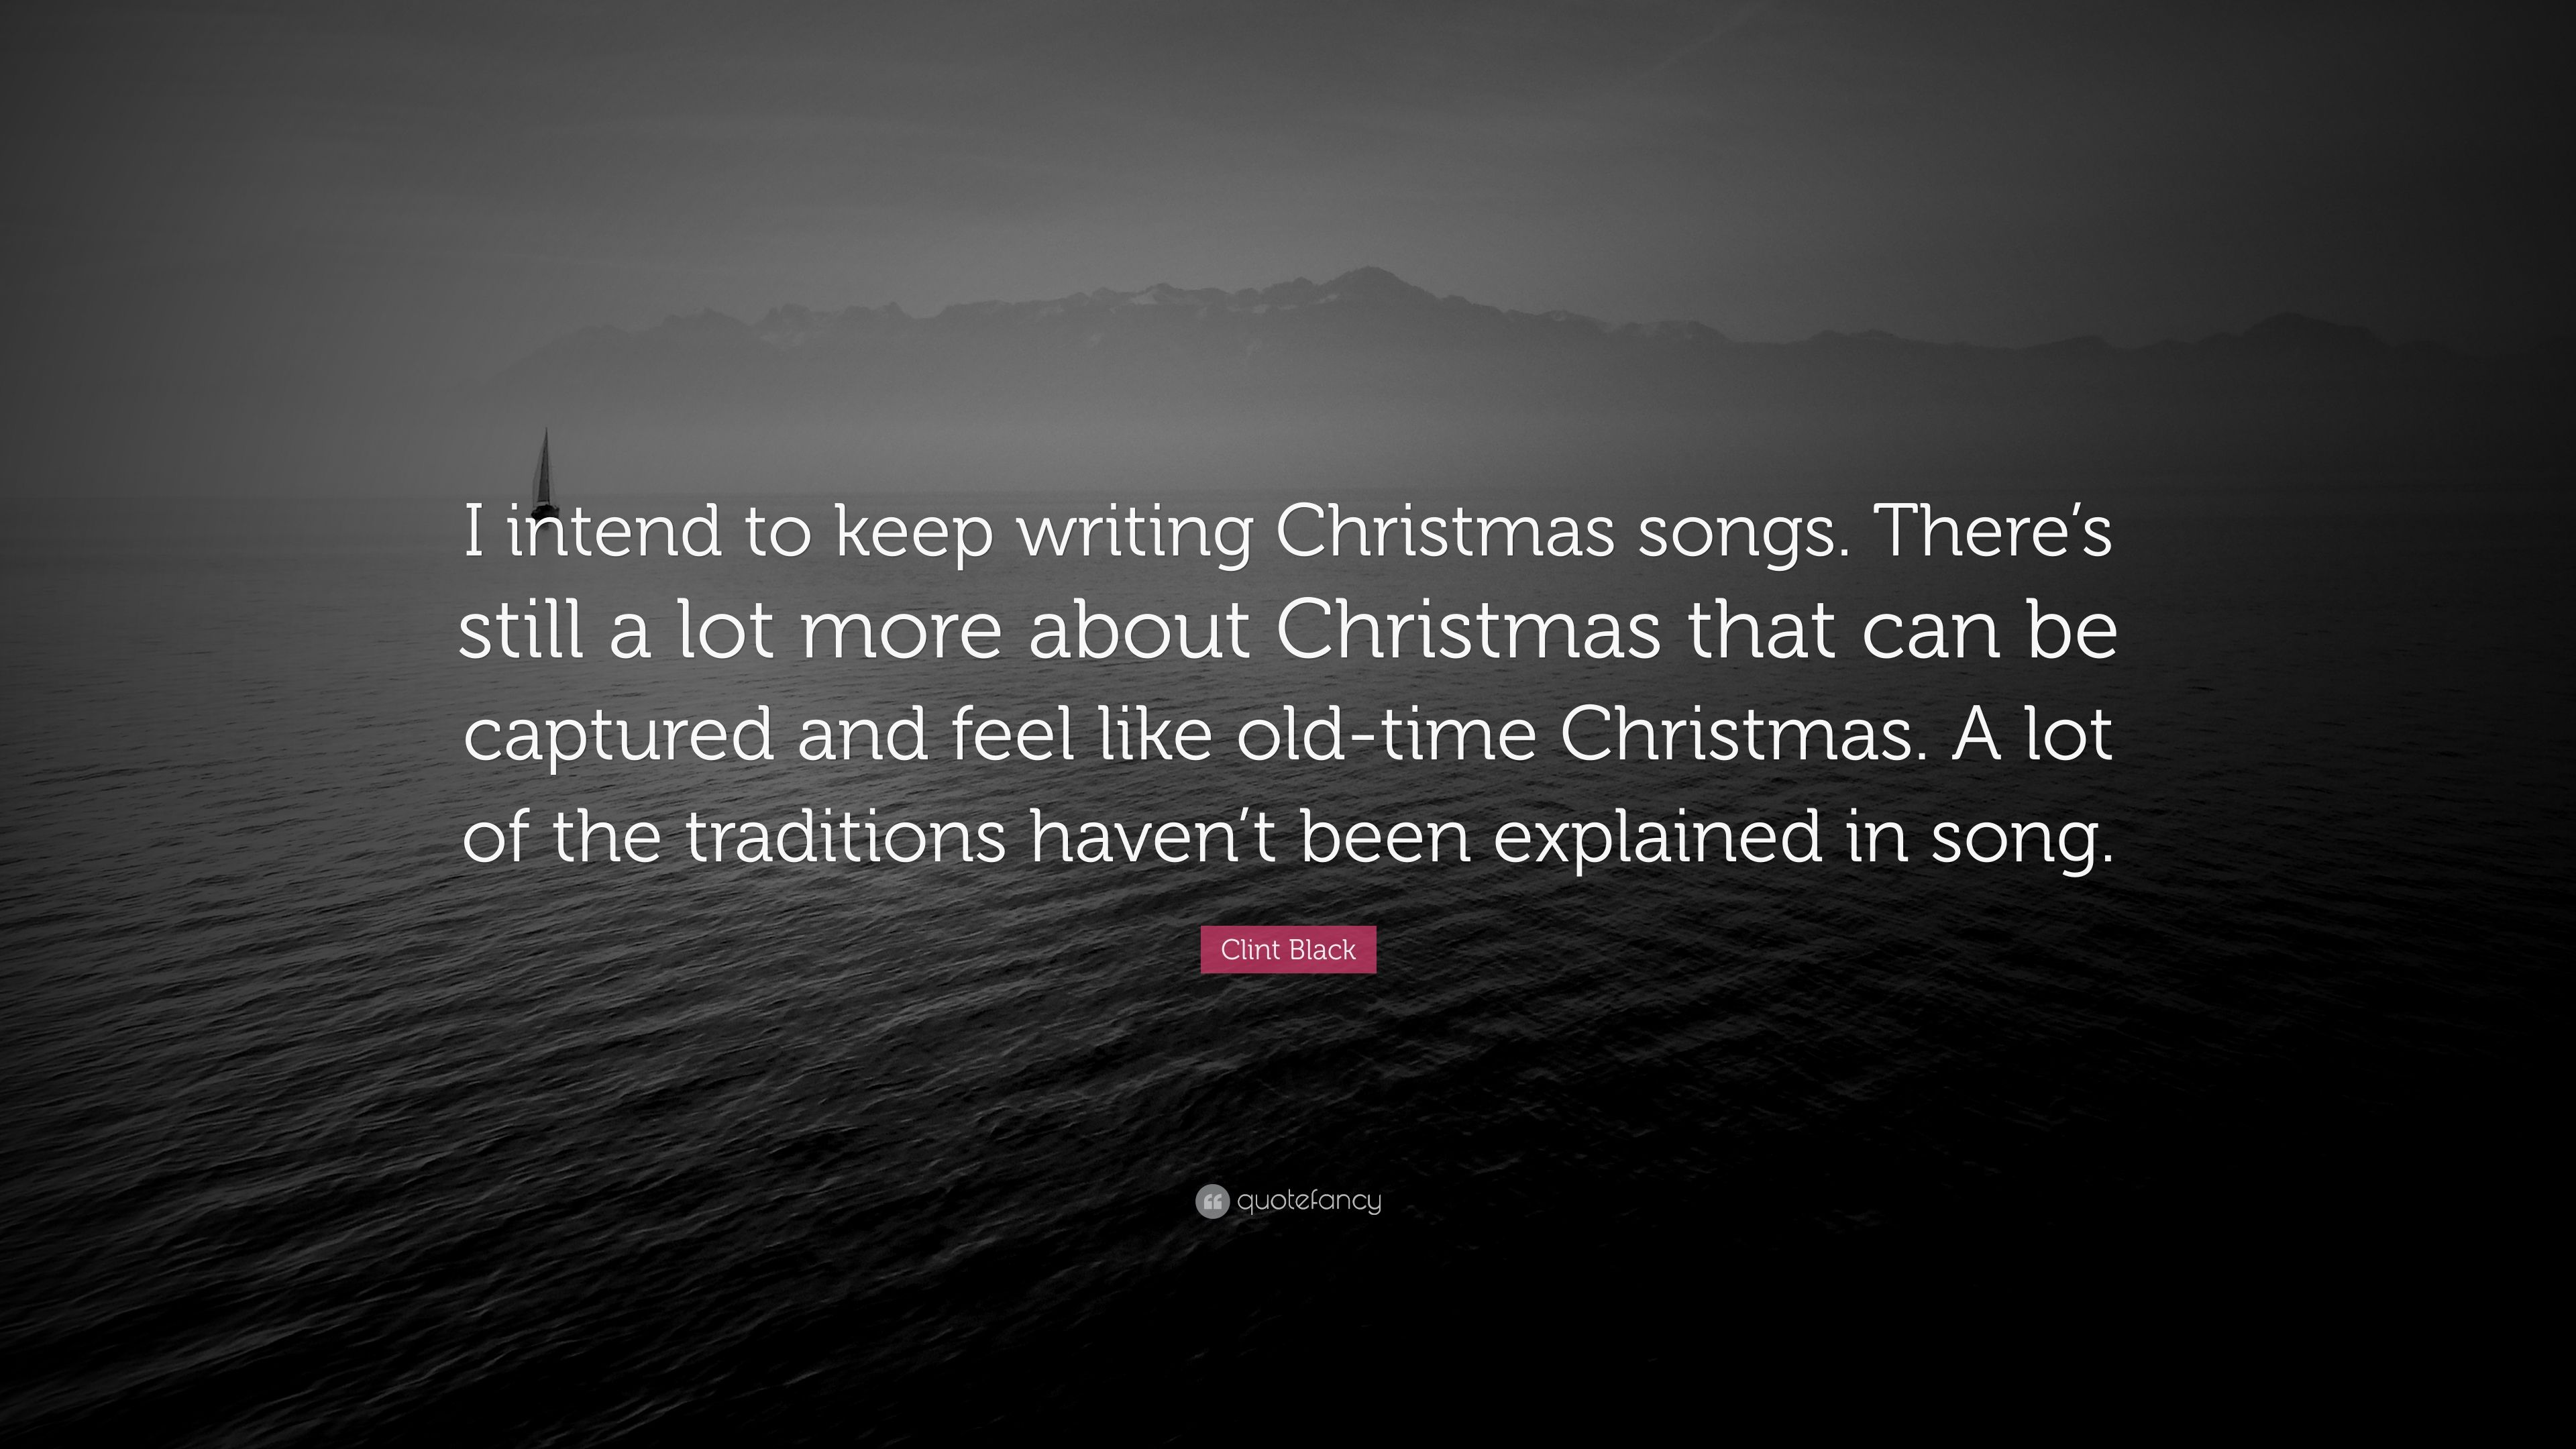 clint black quote i intend to keep writing christmas songs theres still a - Black Christmas Songs